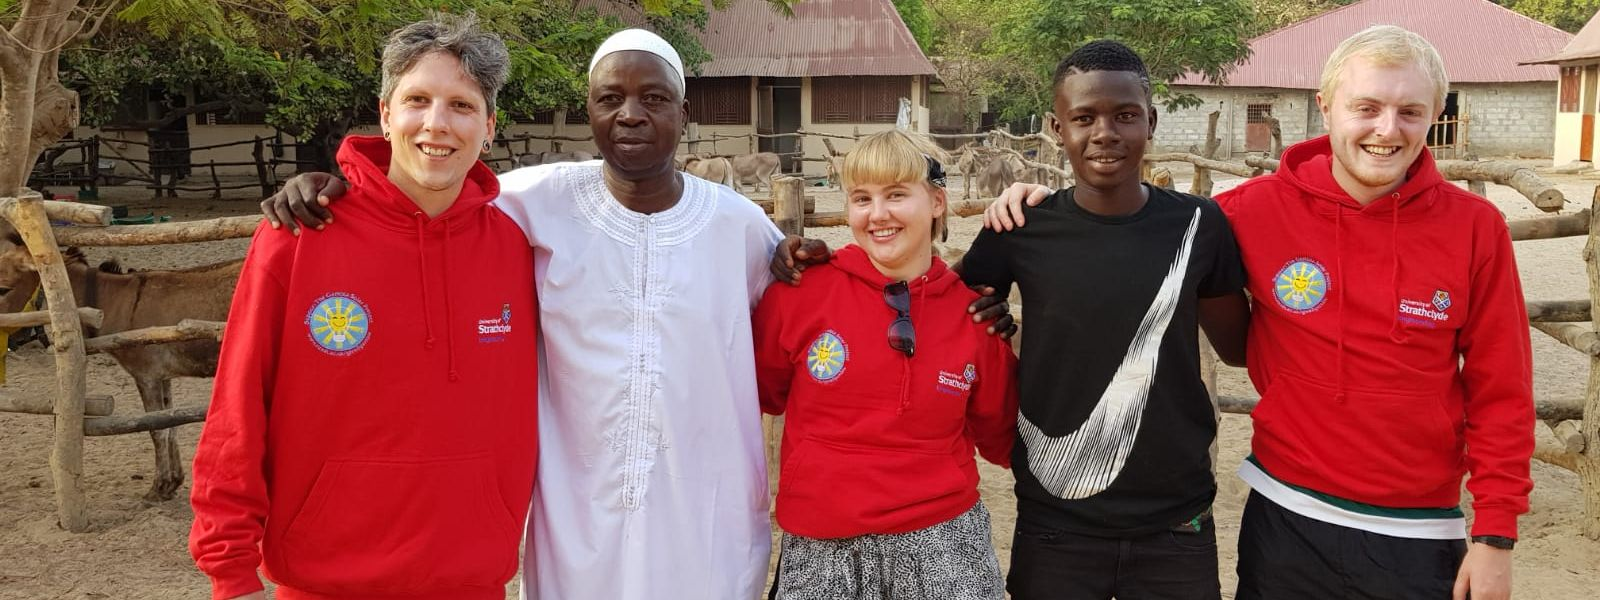 Strathclyde students Callum Taylor, Emma Tate and Steven Nolan with Kembujeh with local people in Kembujeh.